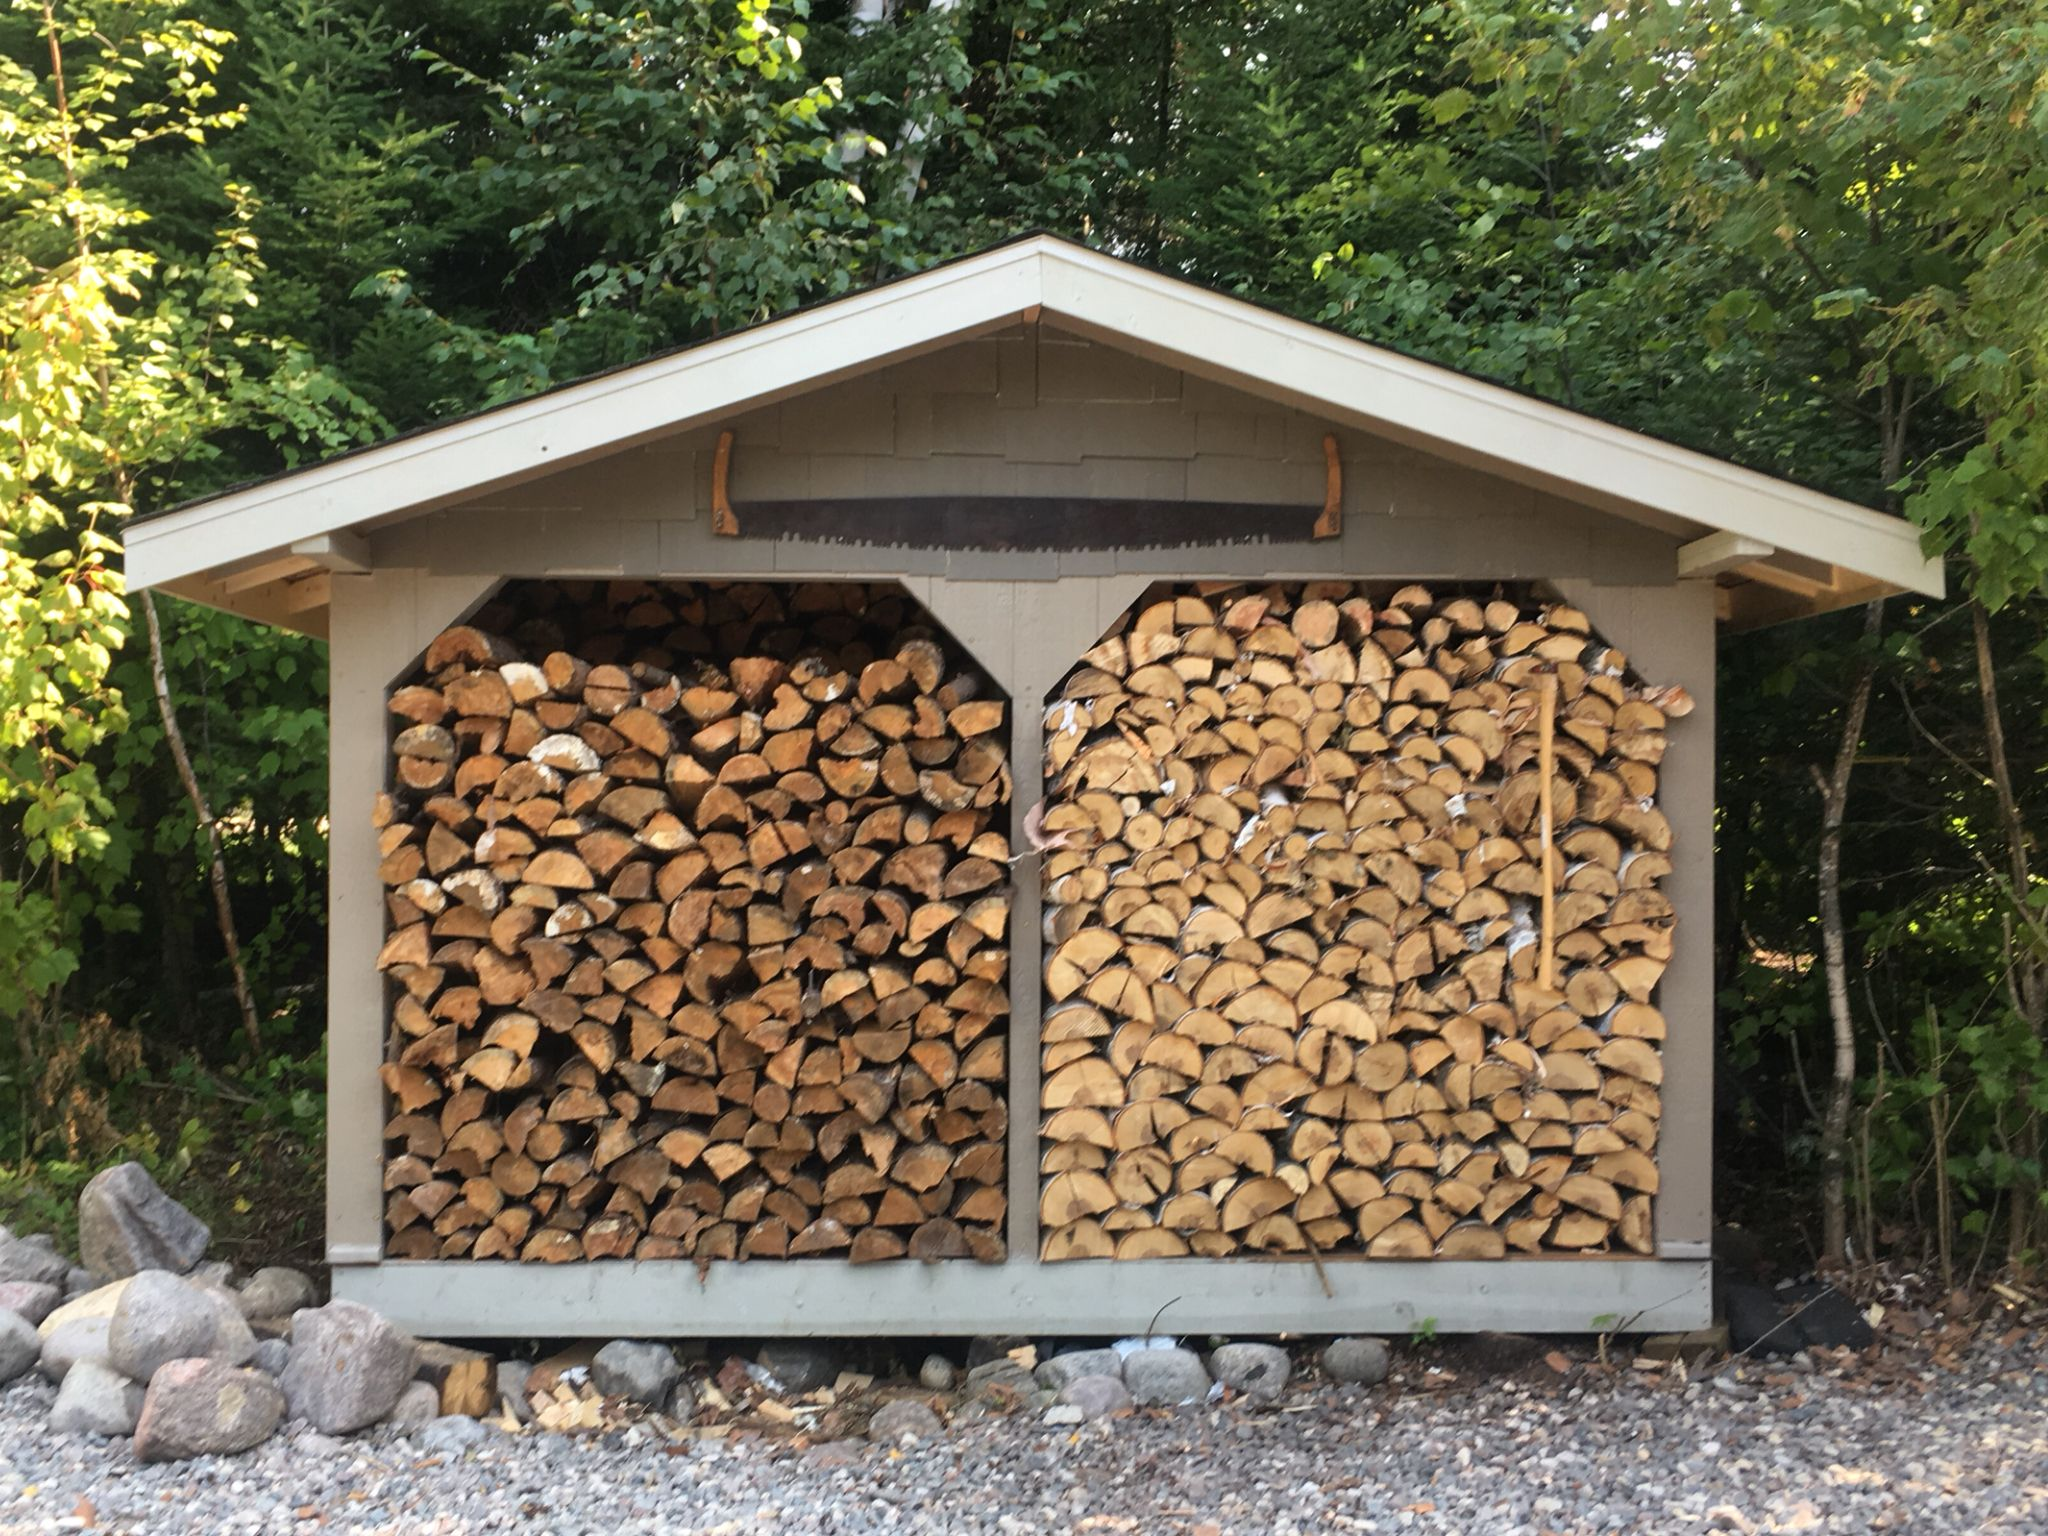 6 Cord Firewood Shed Firewood Shed Firewood Storage Outdoor Wood Shed